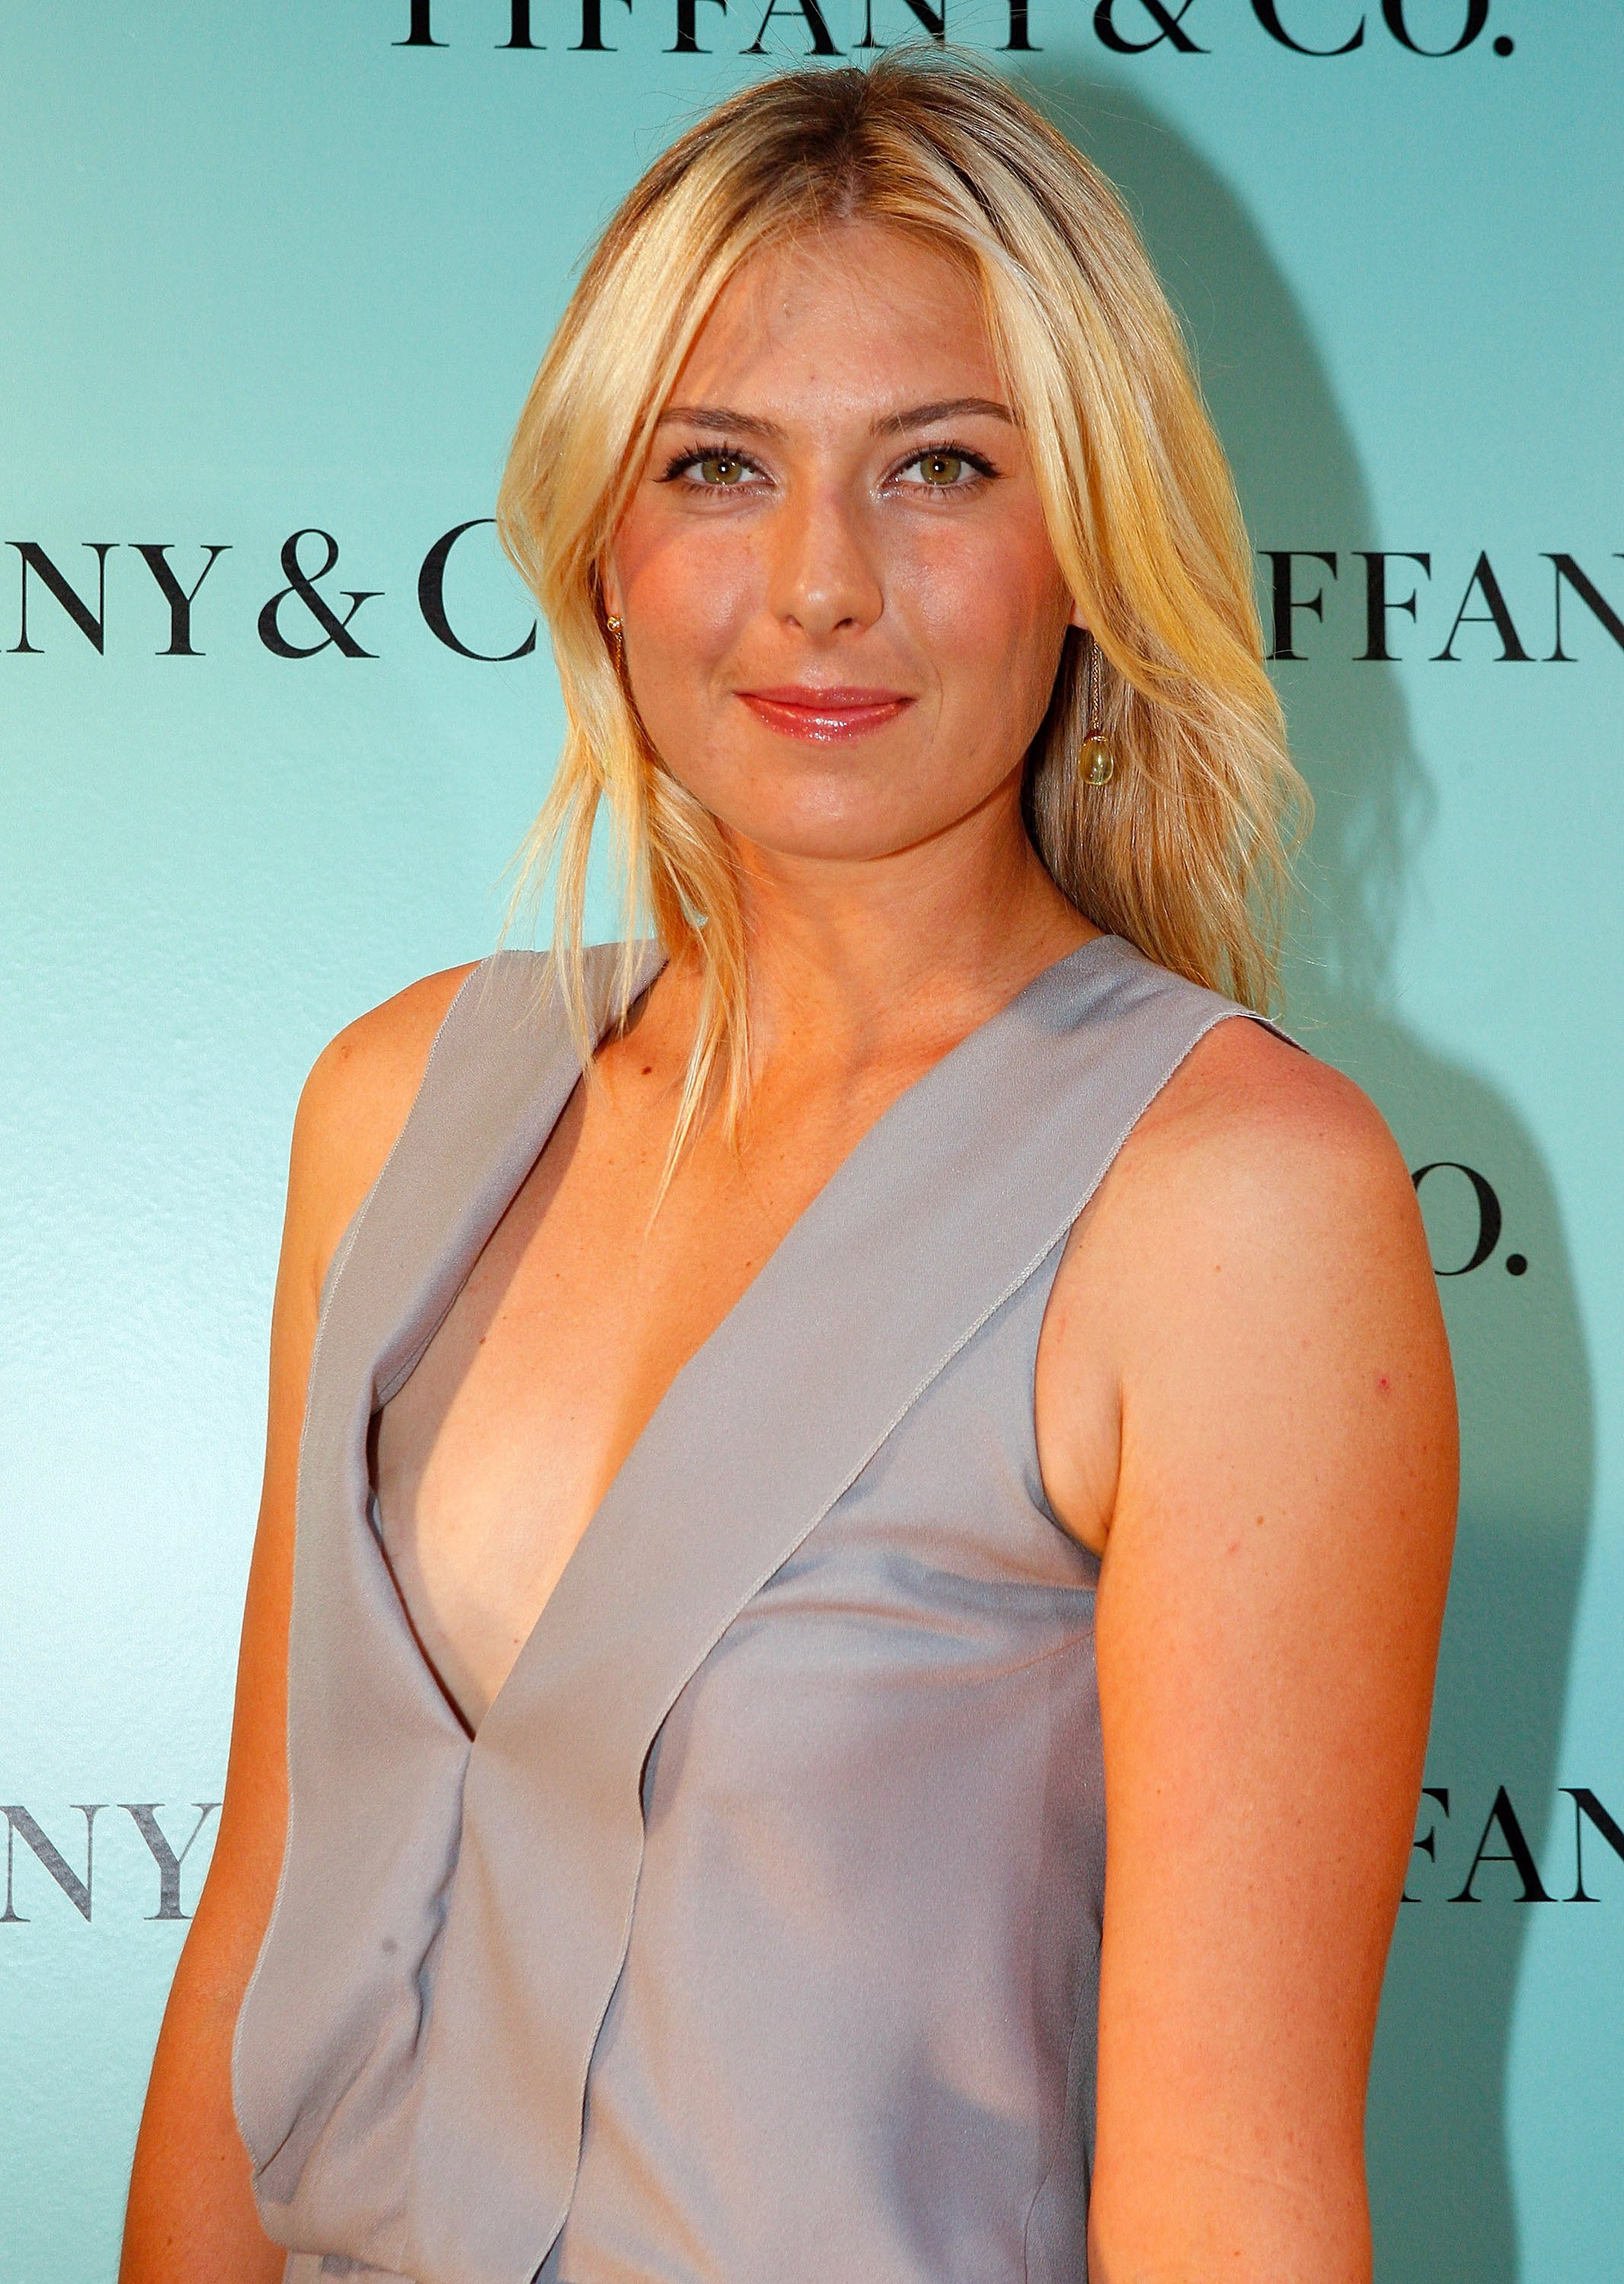 maria-sharapova-naked-pictures-monica-lewinsky-facial